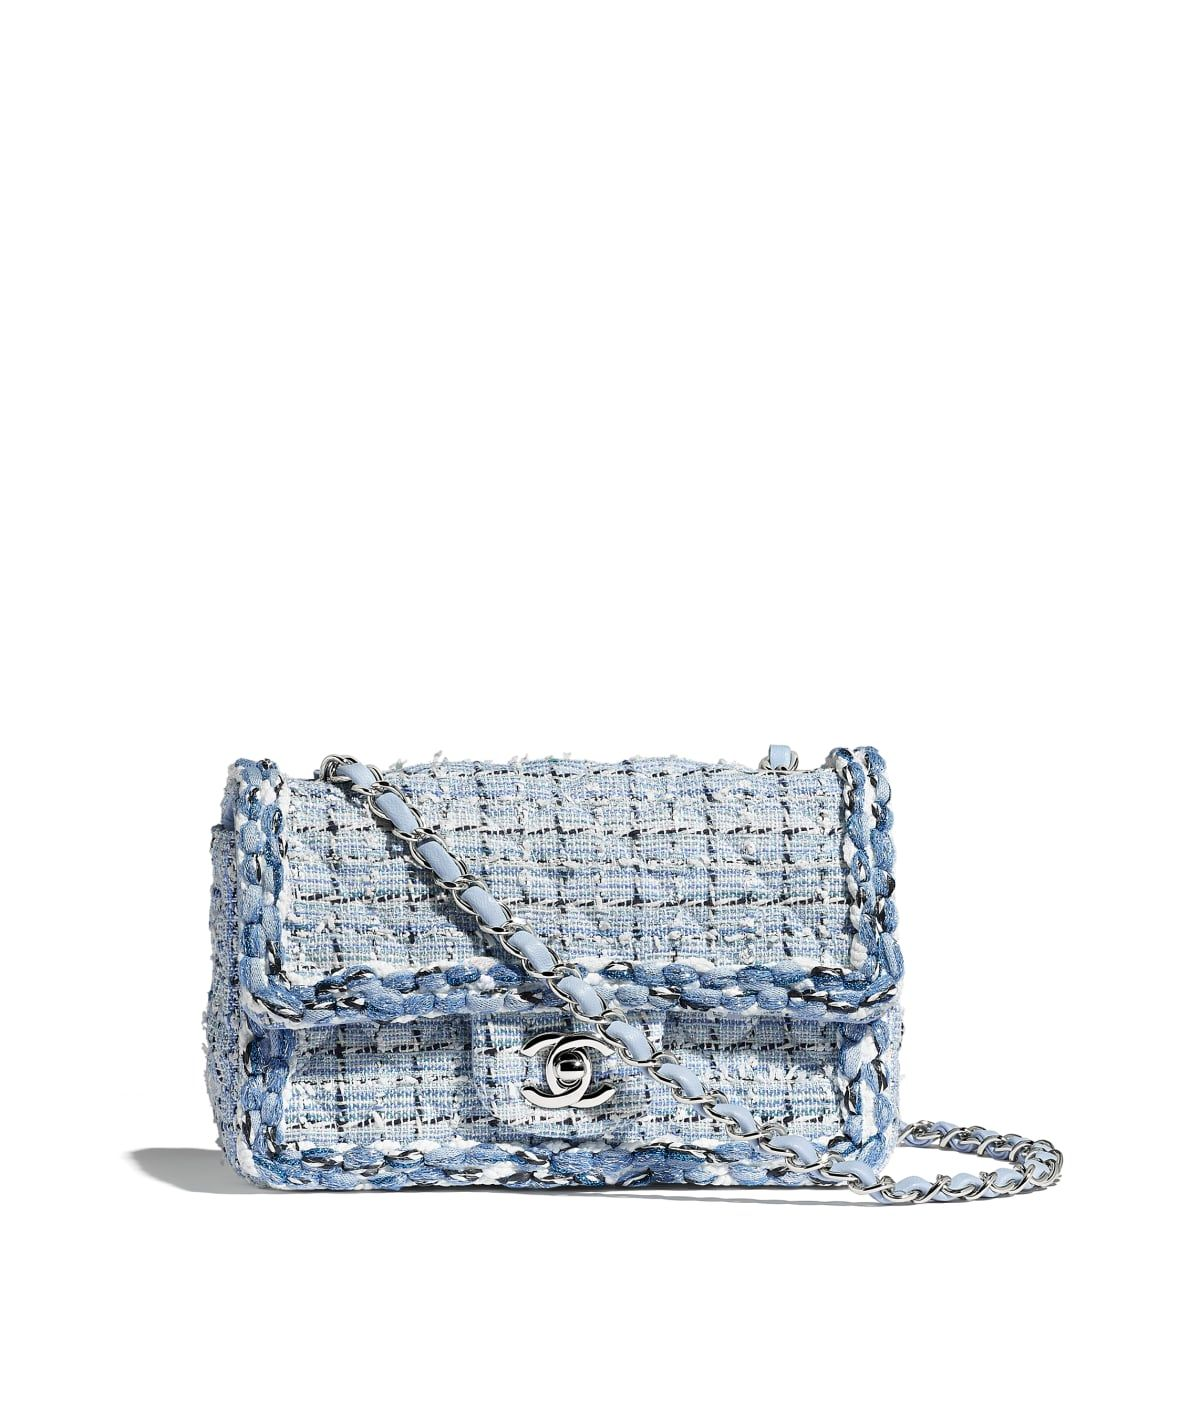 25c52c7a9b8a Handbags of the Cruise 2018/19 CHANEL Fashion collection : Mini Flap Bag,  tweed, braid & silver-tone metal., blue & white. on the CHANEL official  website.